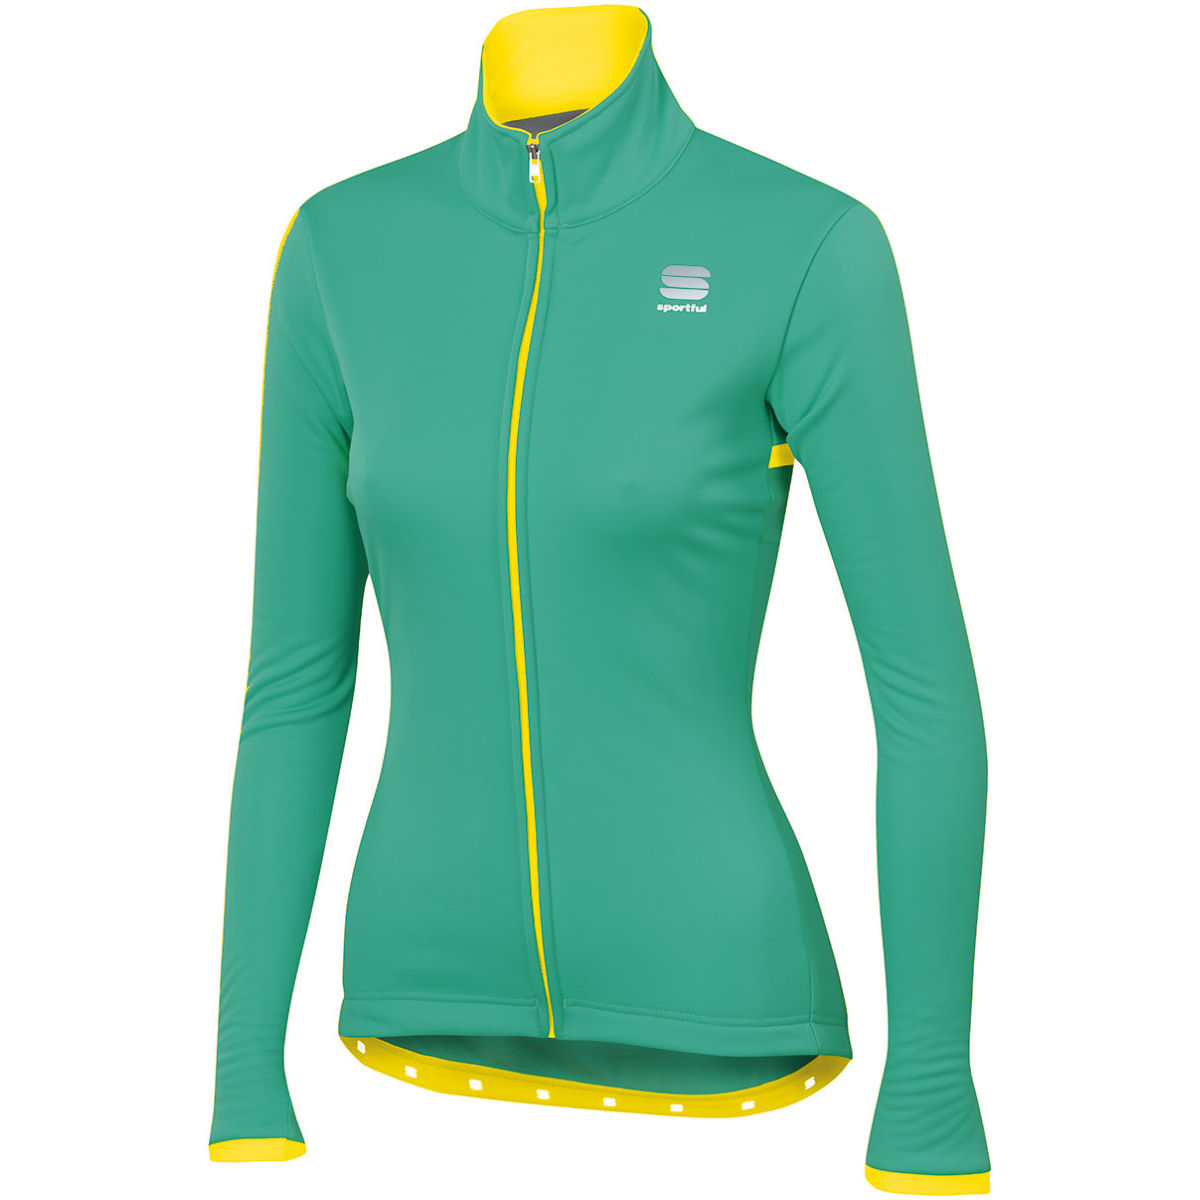 Veste Femme Sportful Luna Softshell - M Waterfall/Yellow Flu Vestes